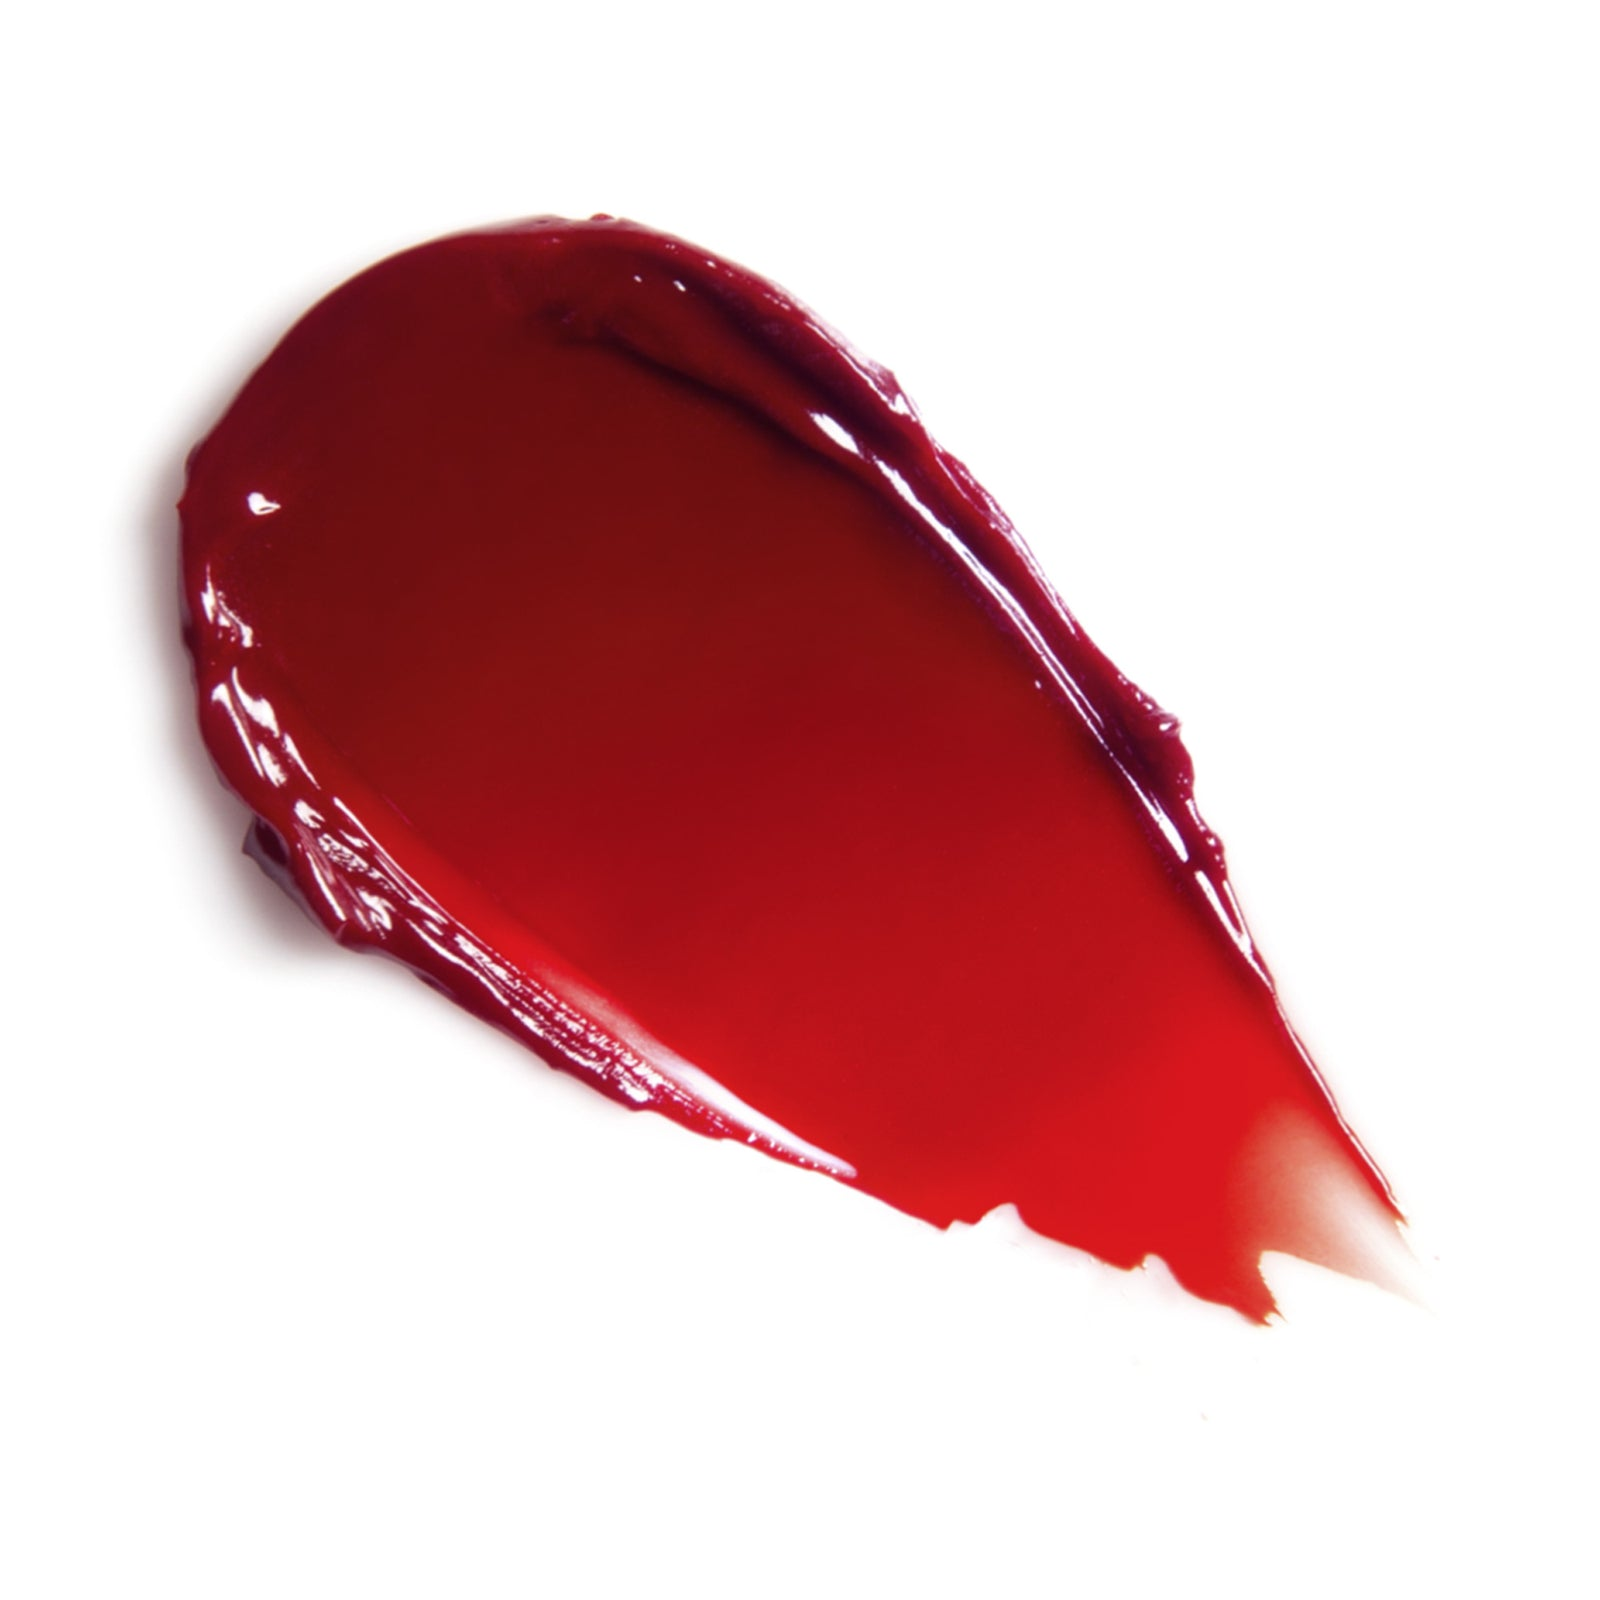 Bloodflower | Color Nectar Pigment Balm - Rituel de Fille